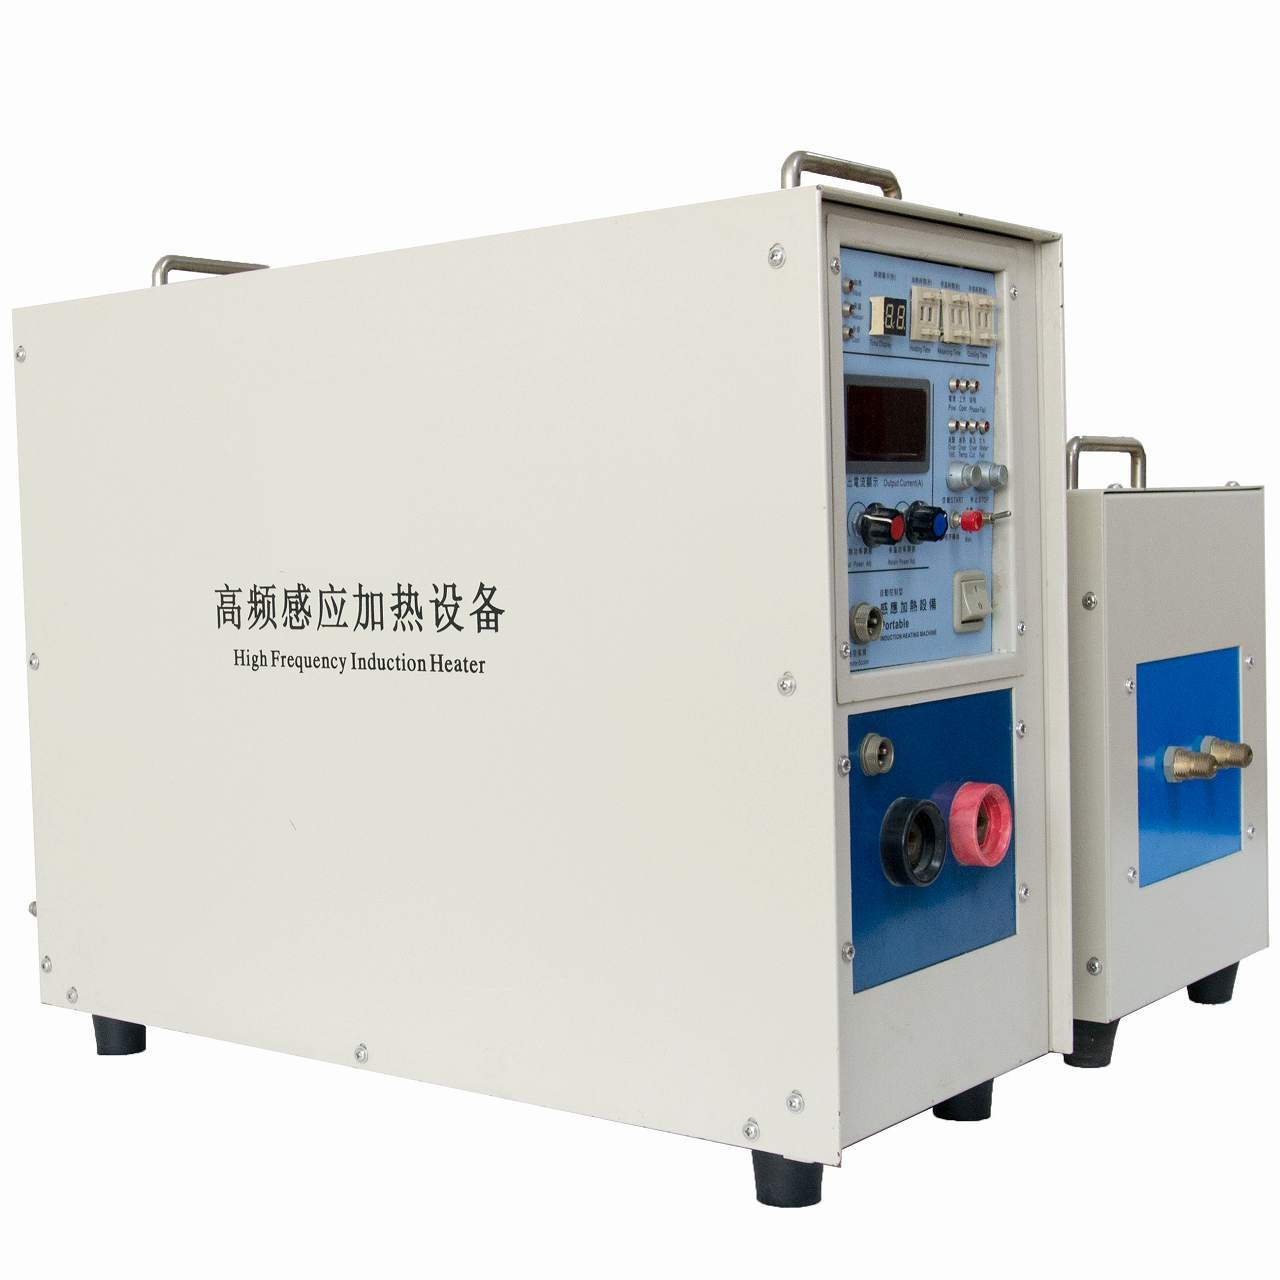 15kva Split High Frequency Induction Heater DDFT-15II